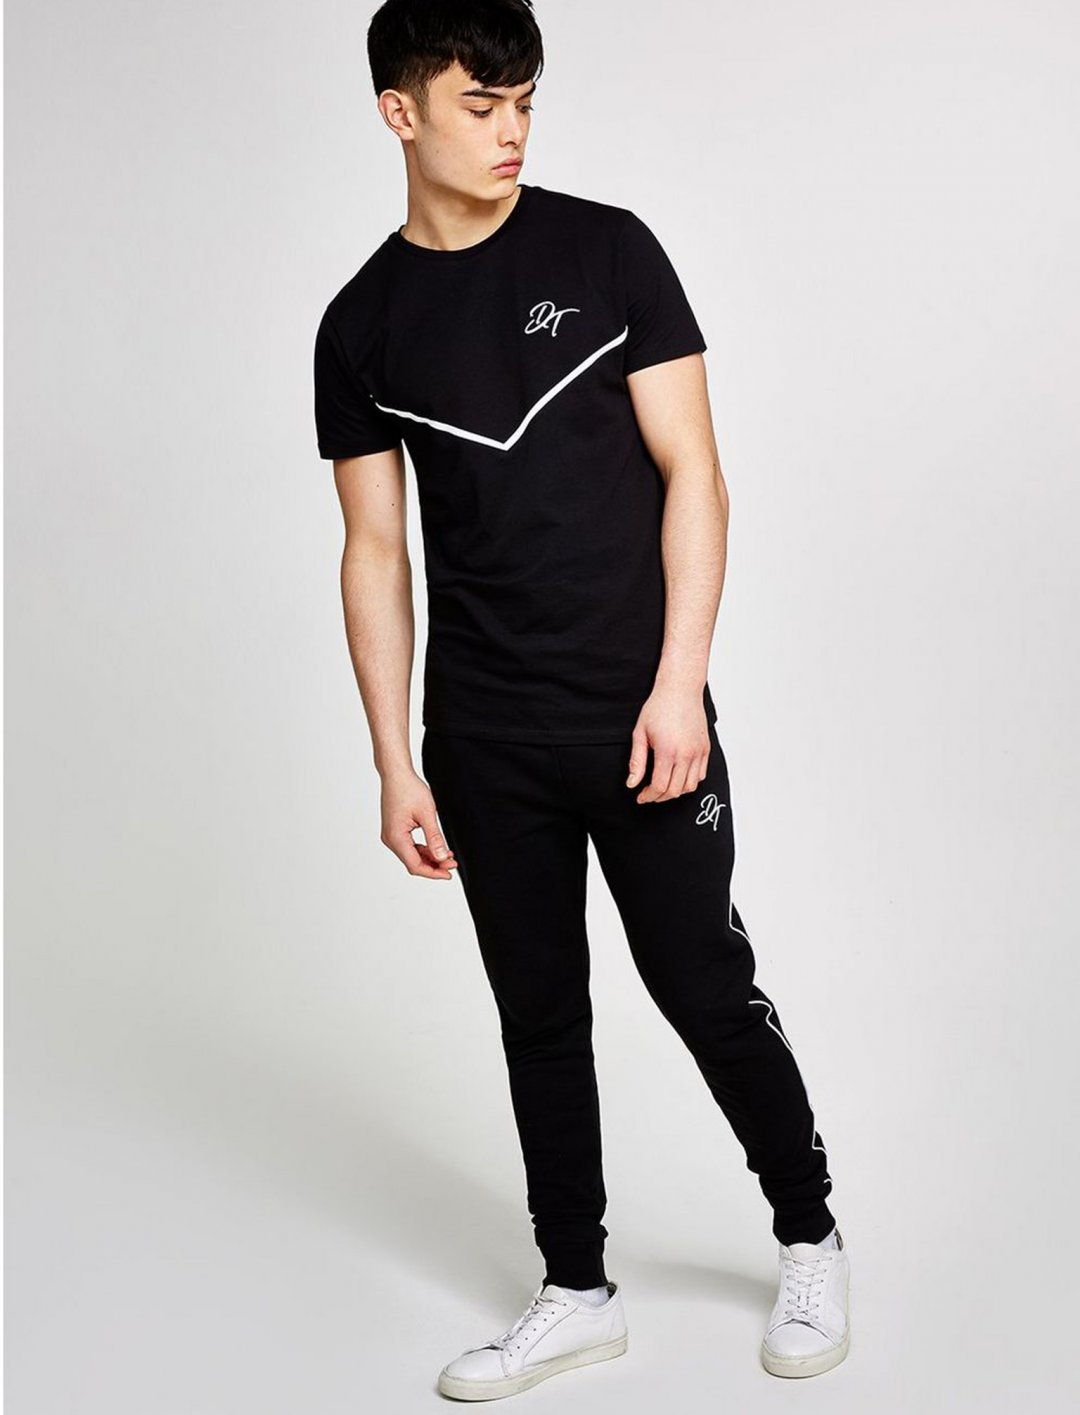 """Devote 'Carter' T-Shirt {""""id"""":5,""""product_section_id"""":1,""""name"""":""""Clothing"""",""""order"""":5} Devote"""